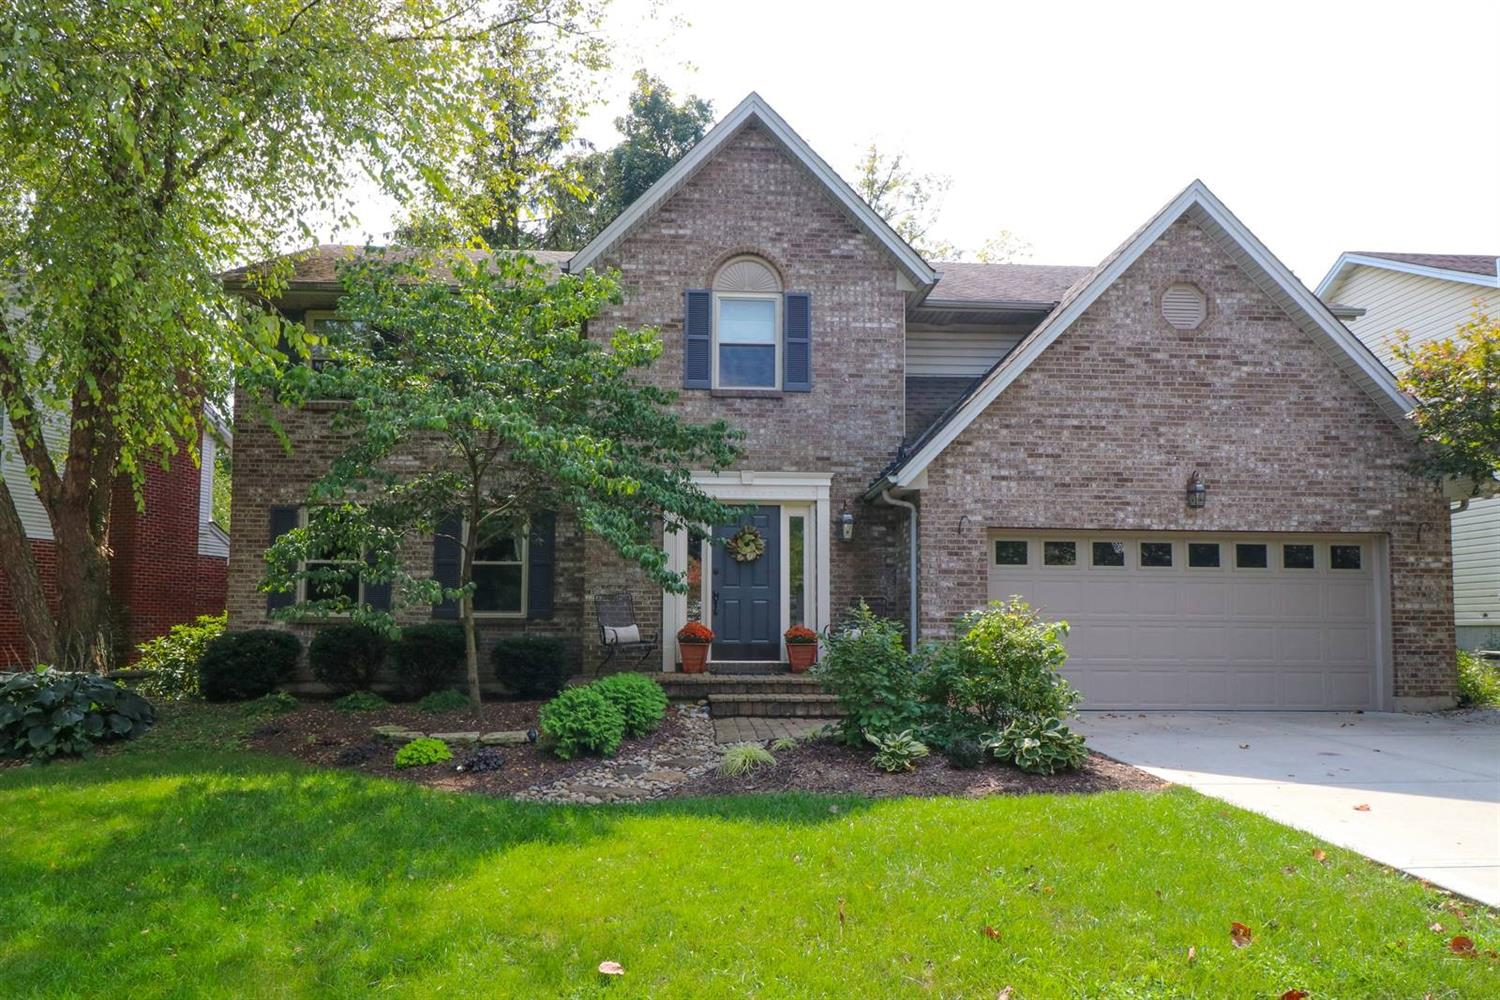 Property for sale at 9675 Kelly Drive, Deerfield Twp.,  Ohio 45140